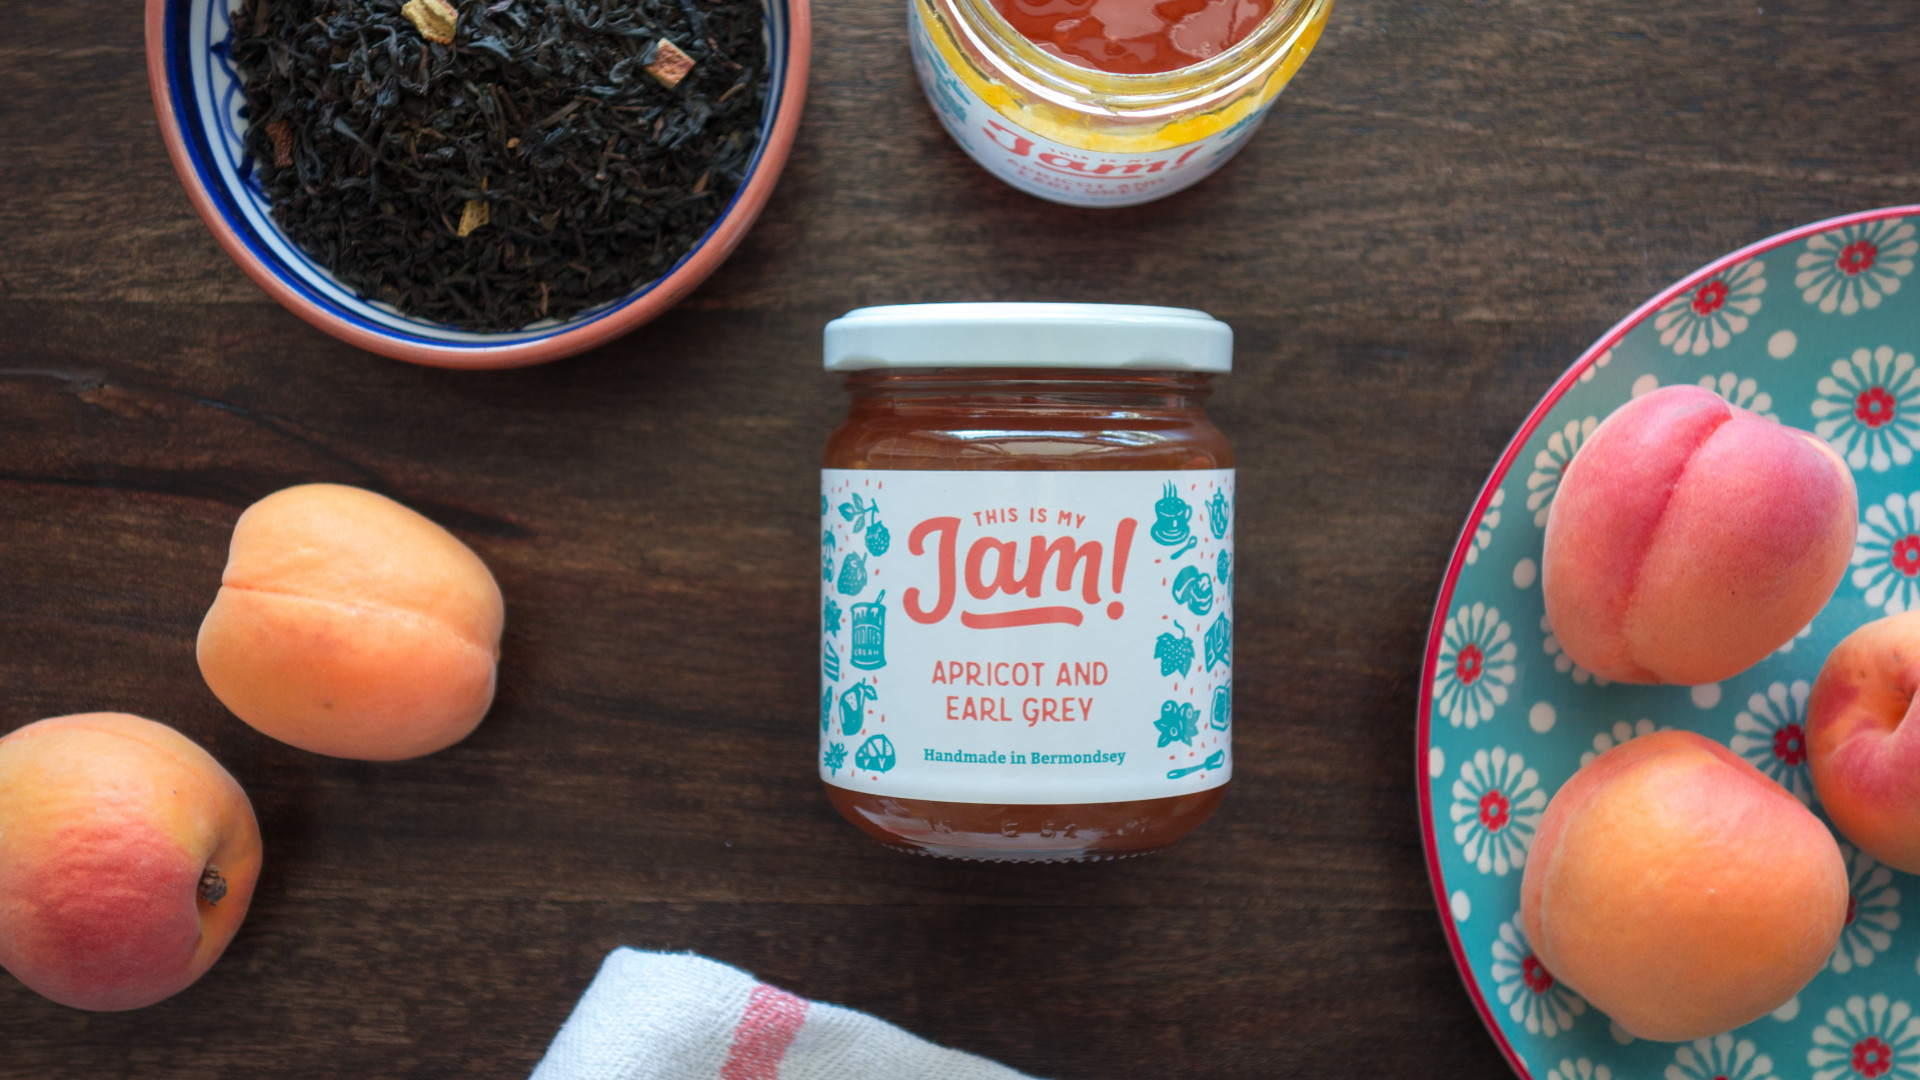 New-school jam: This is My Jam!